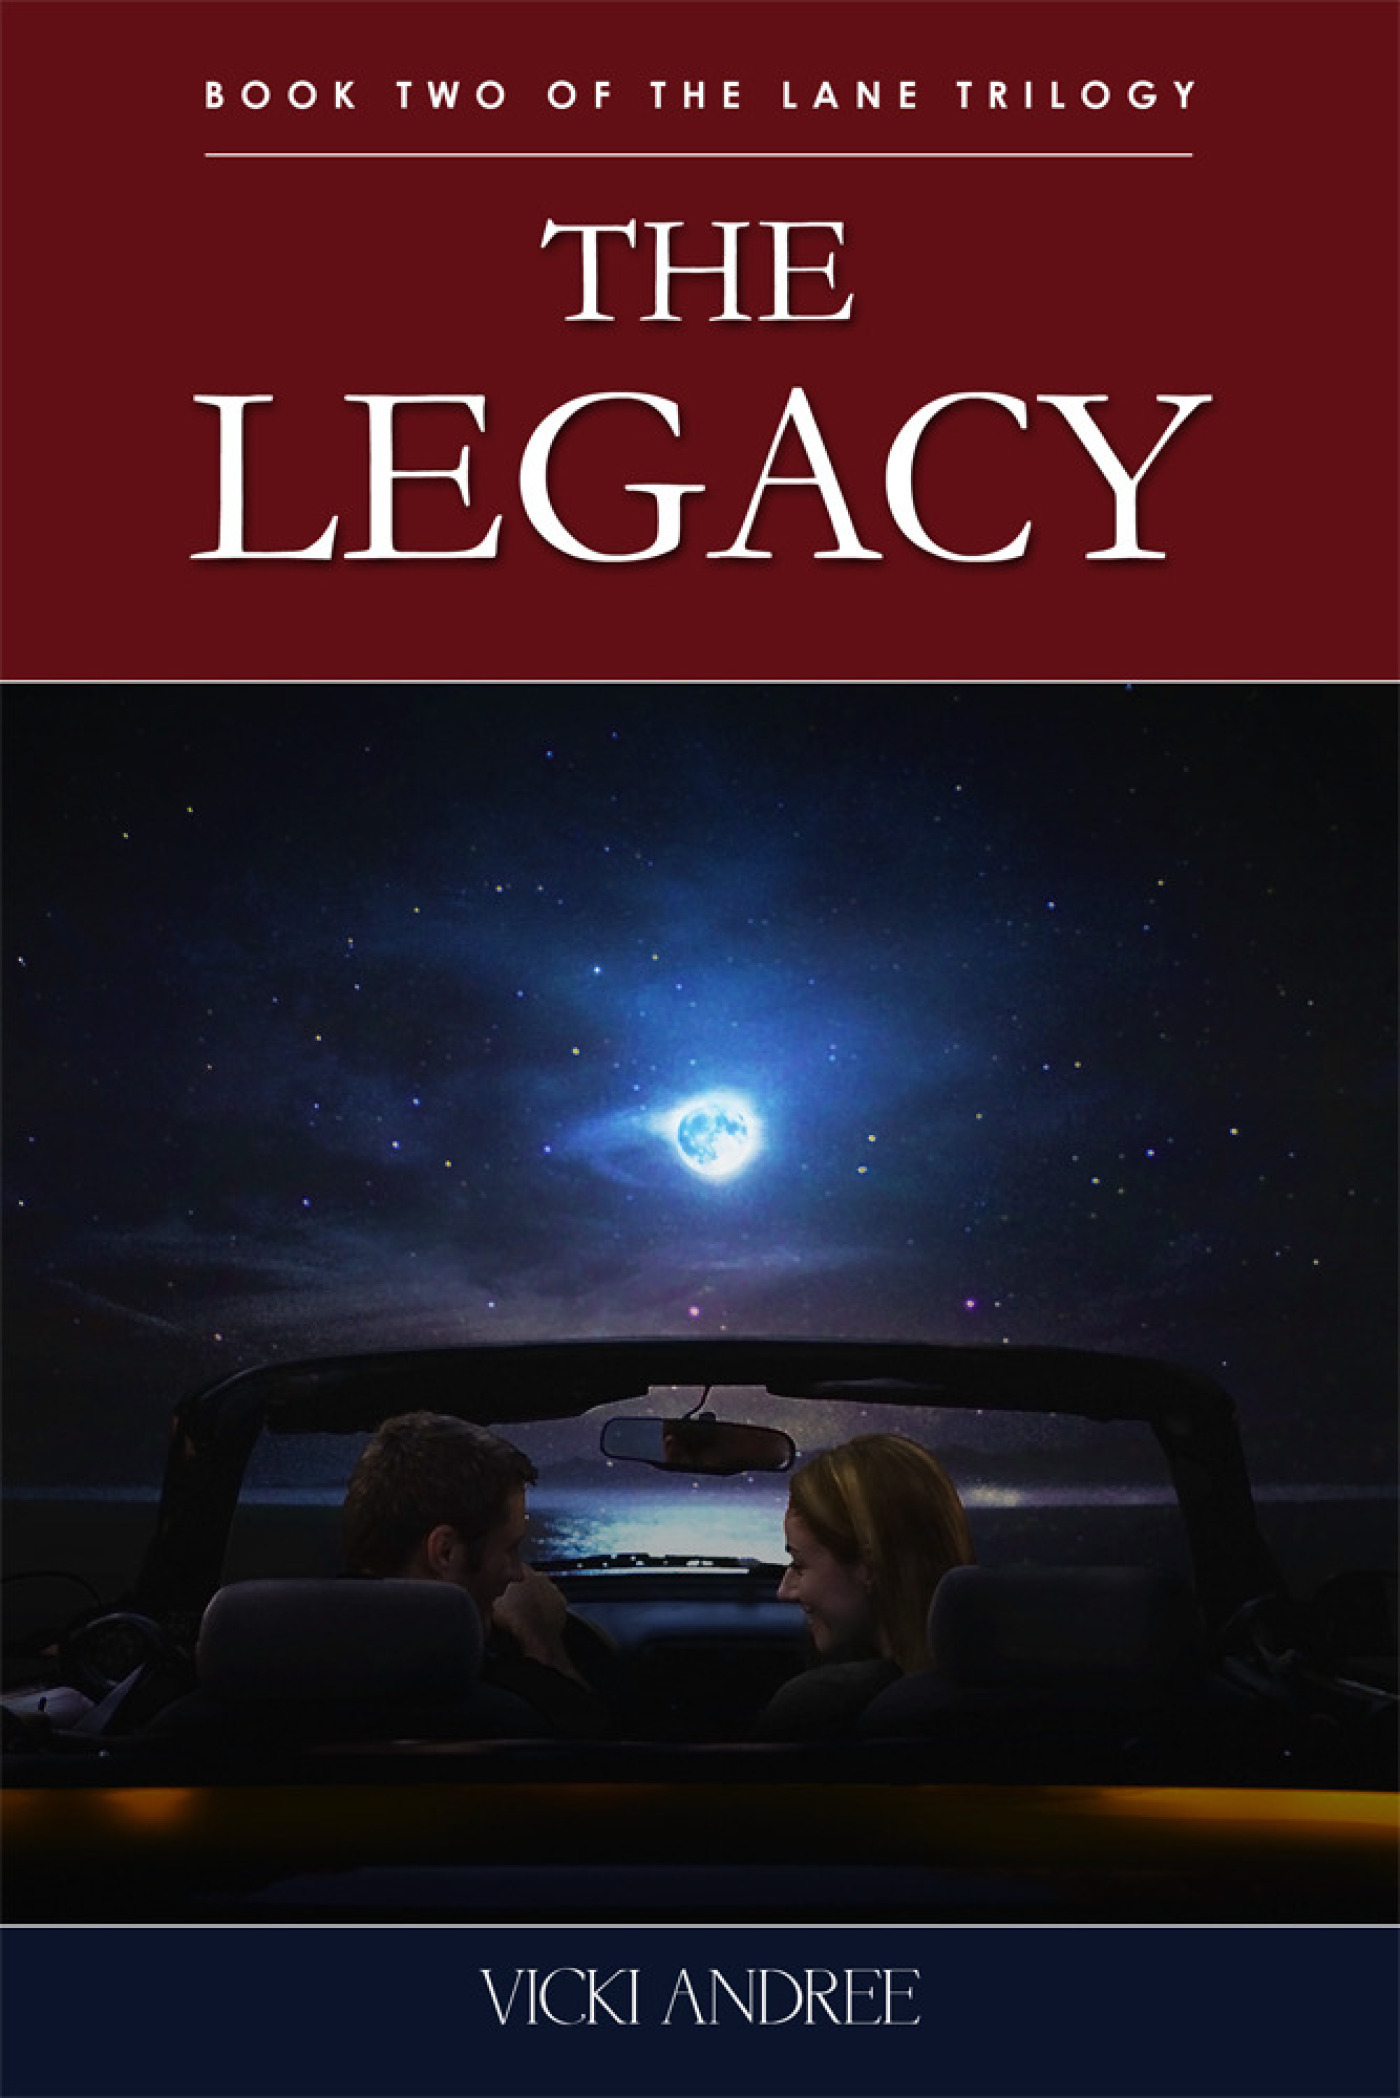 The Legacy: Book Two of the Lane Trilogy